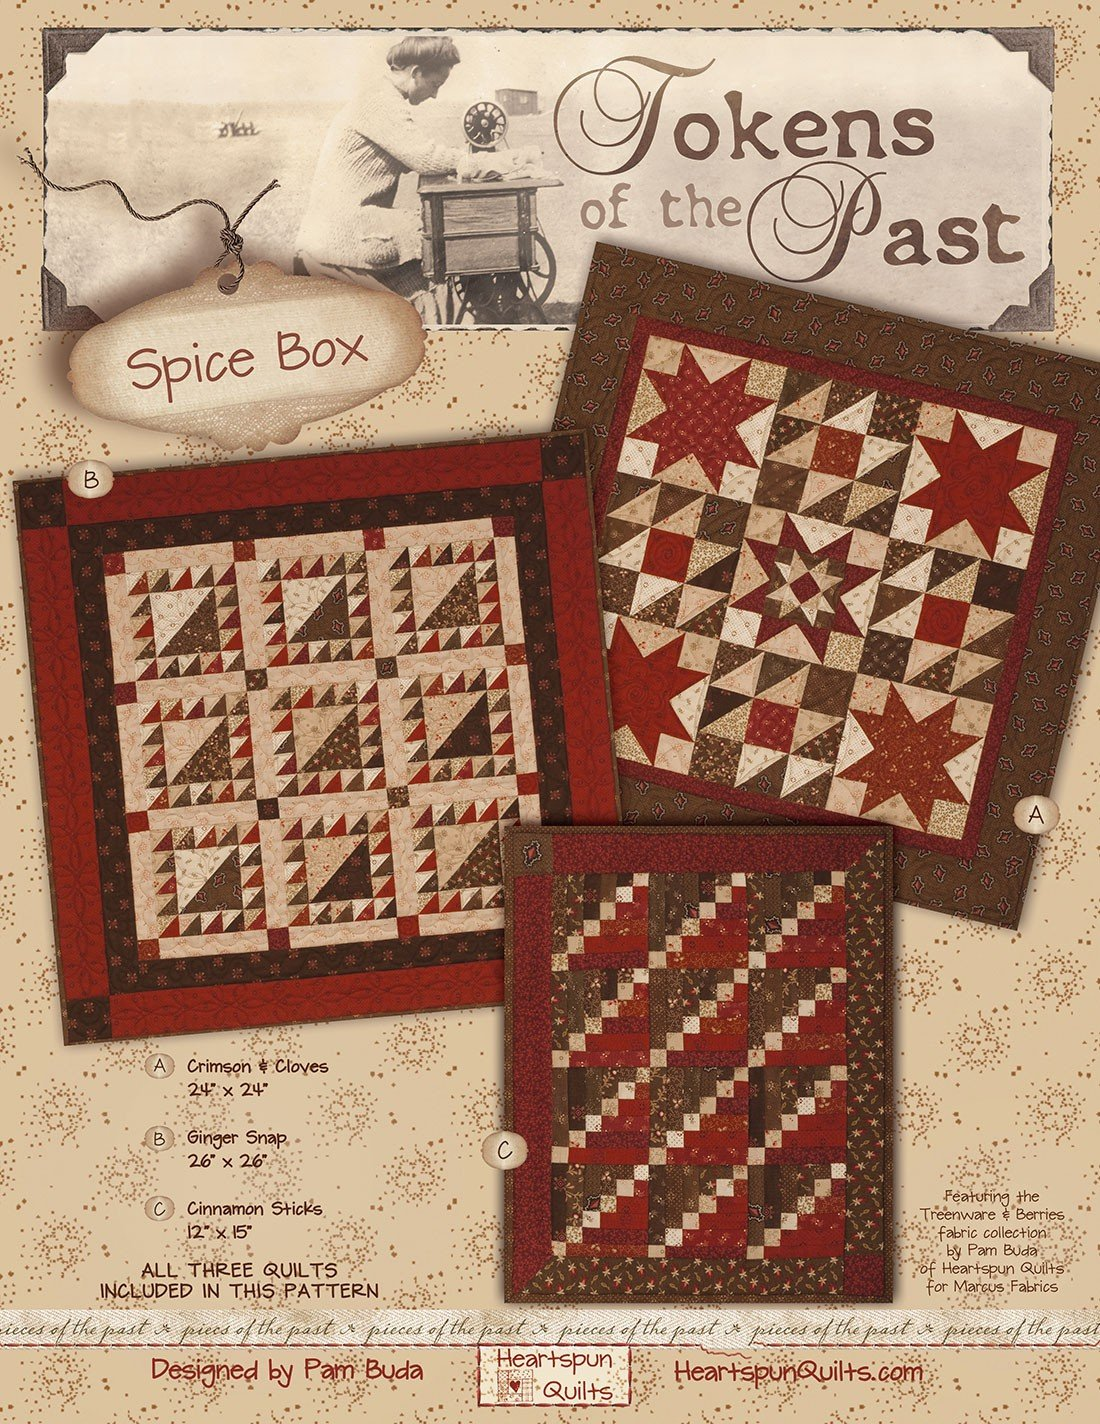 Tokens of the Past: Spice Box